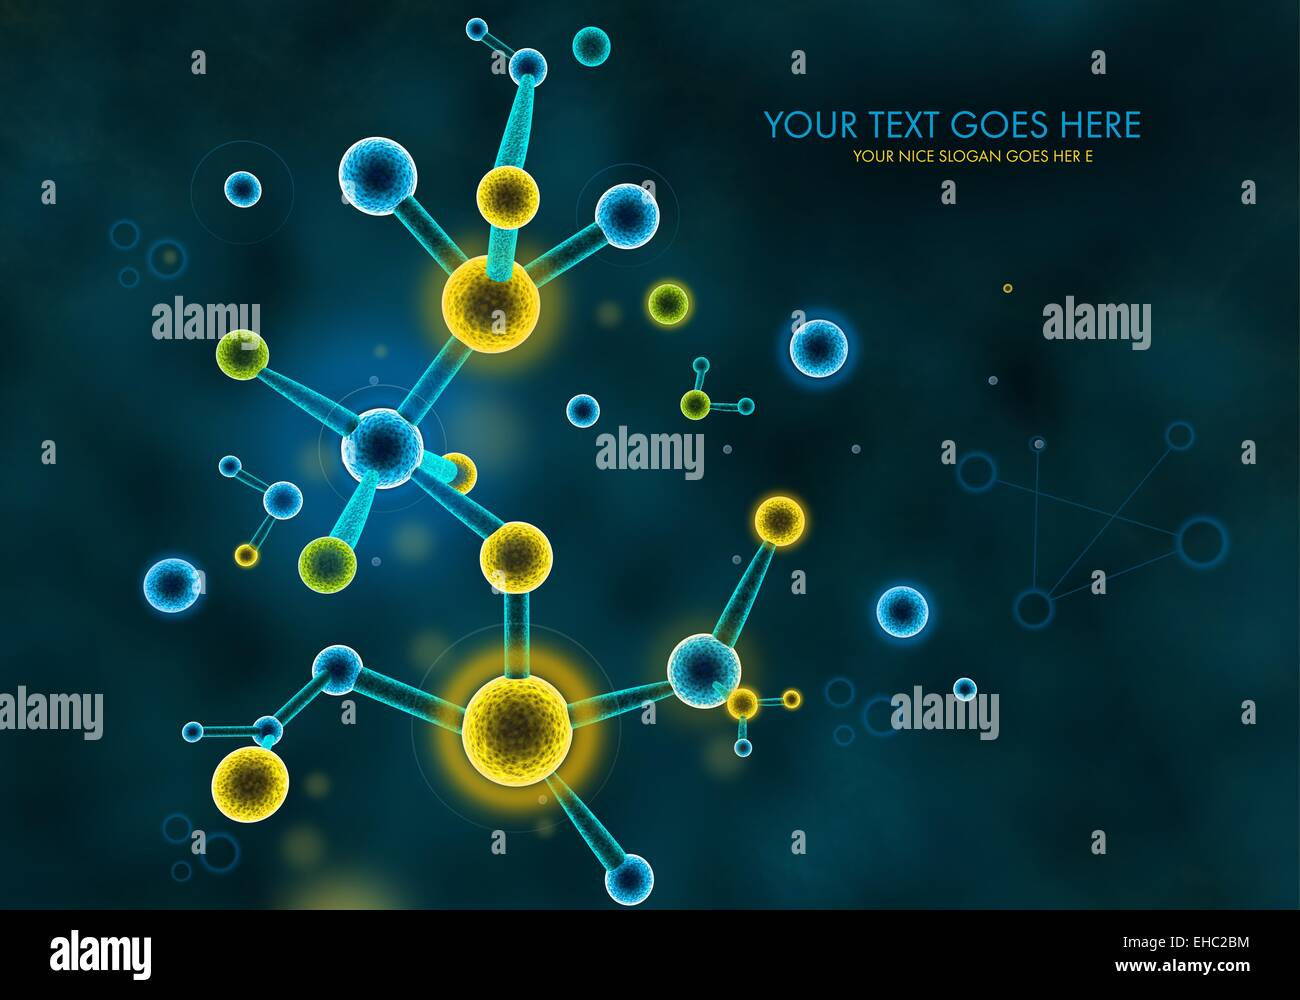 A 3D illustration representing chemistry organic protein molecules formations and  structures on a dark background Stock Photo